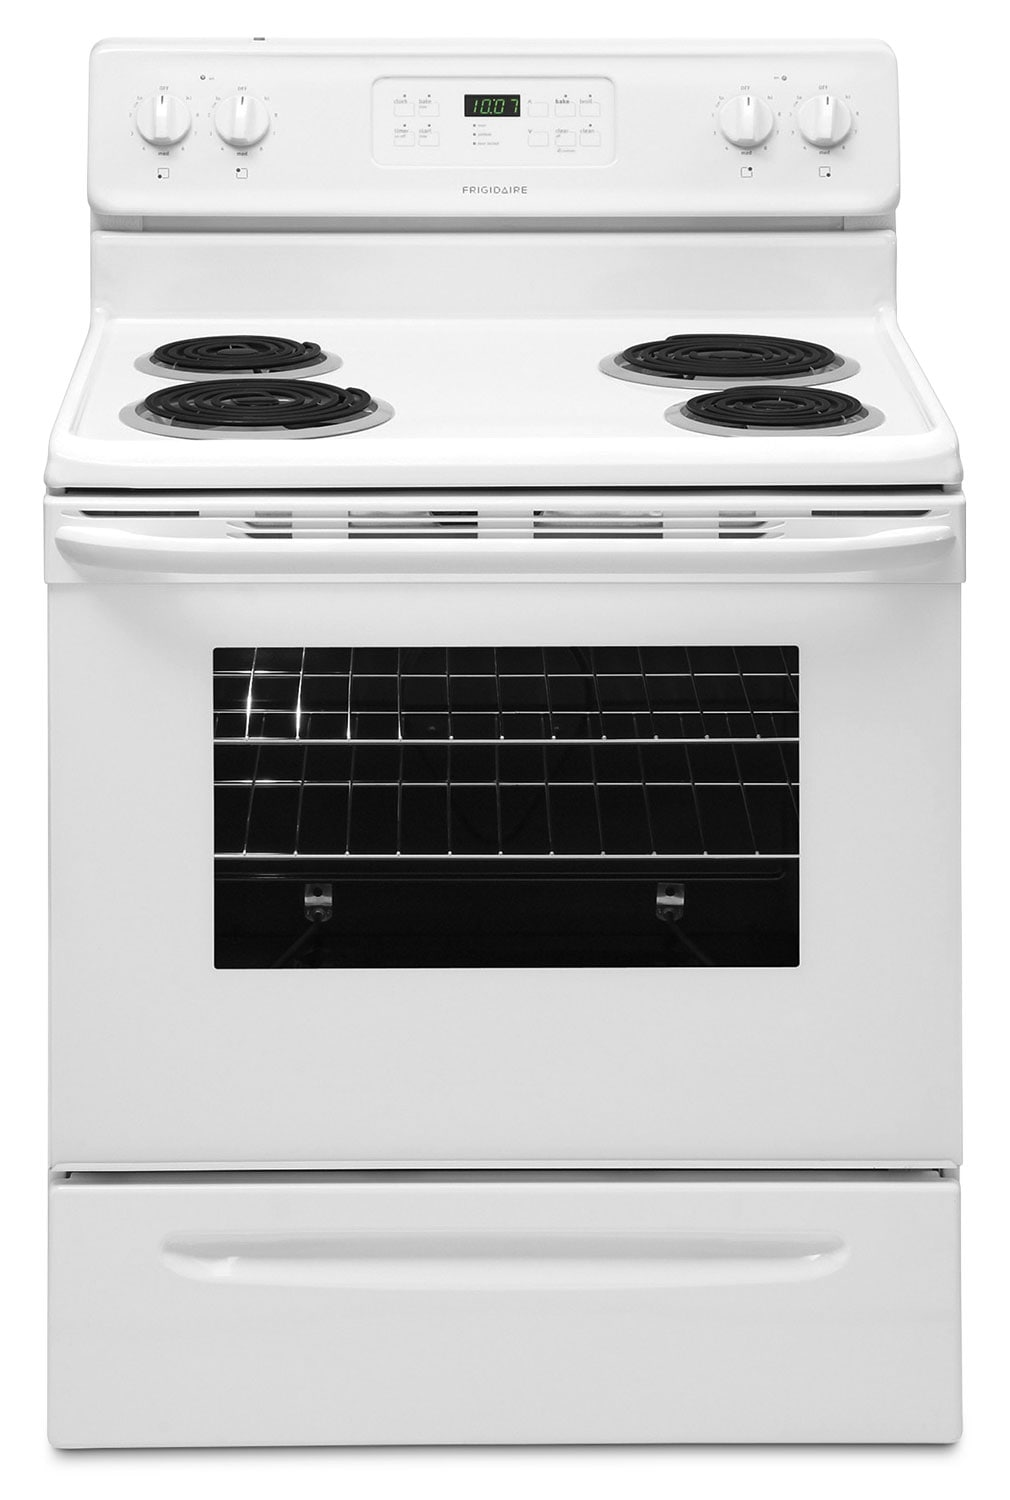 Frigidaire White Freestanding Electric Range (5.3 Cu. Ft.) - CFEF3016LW